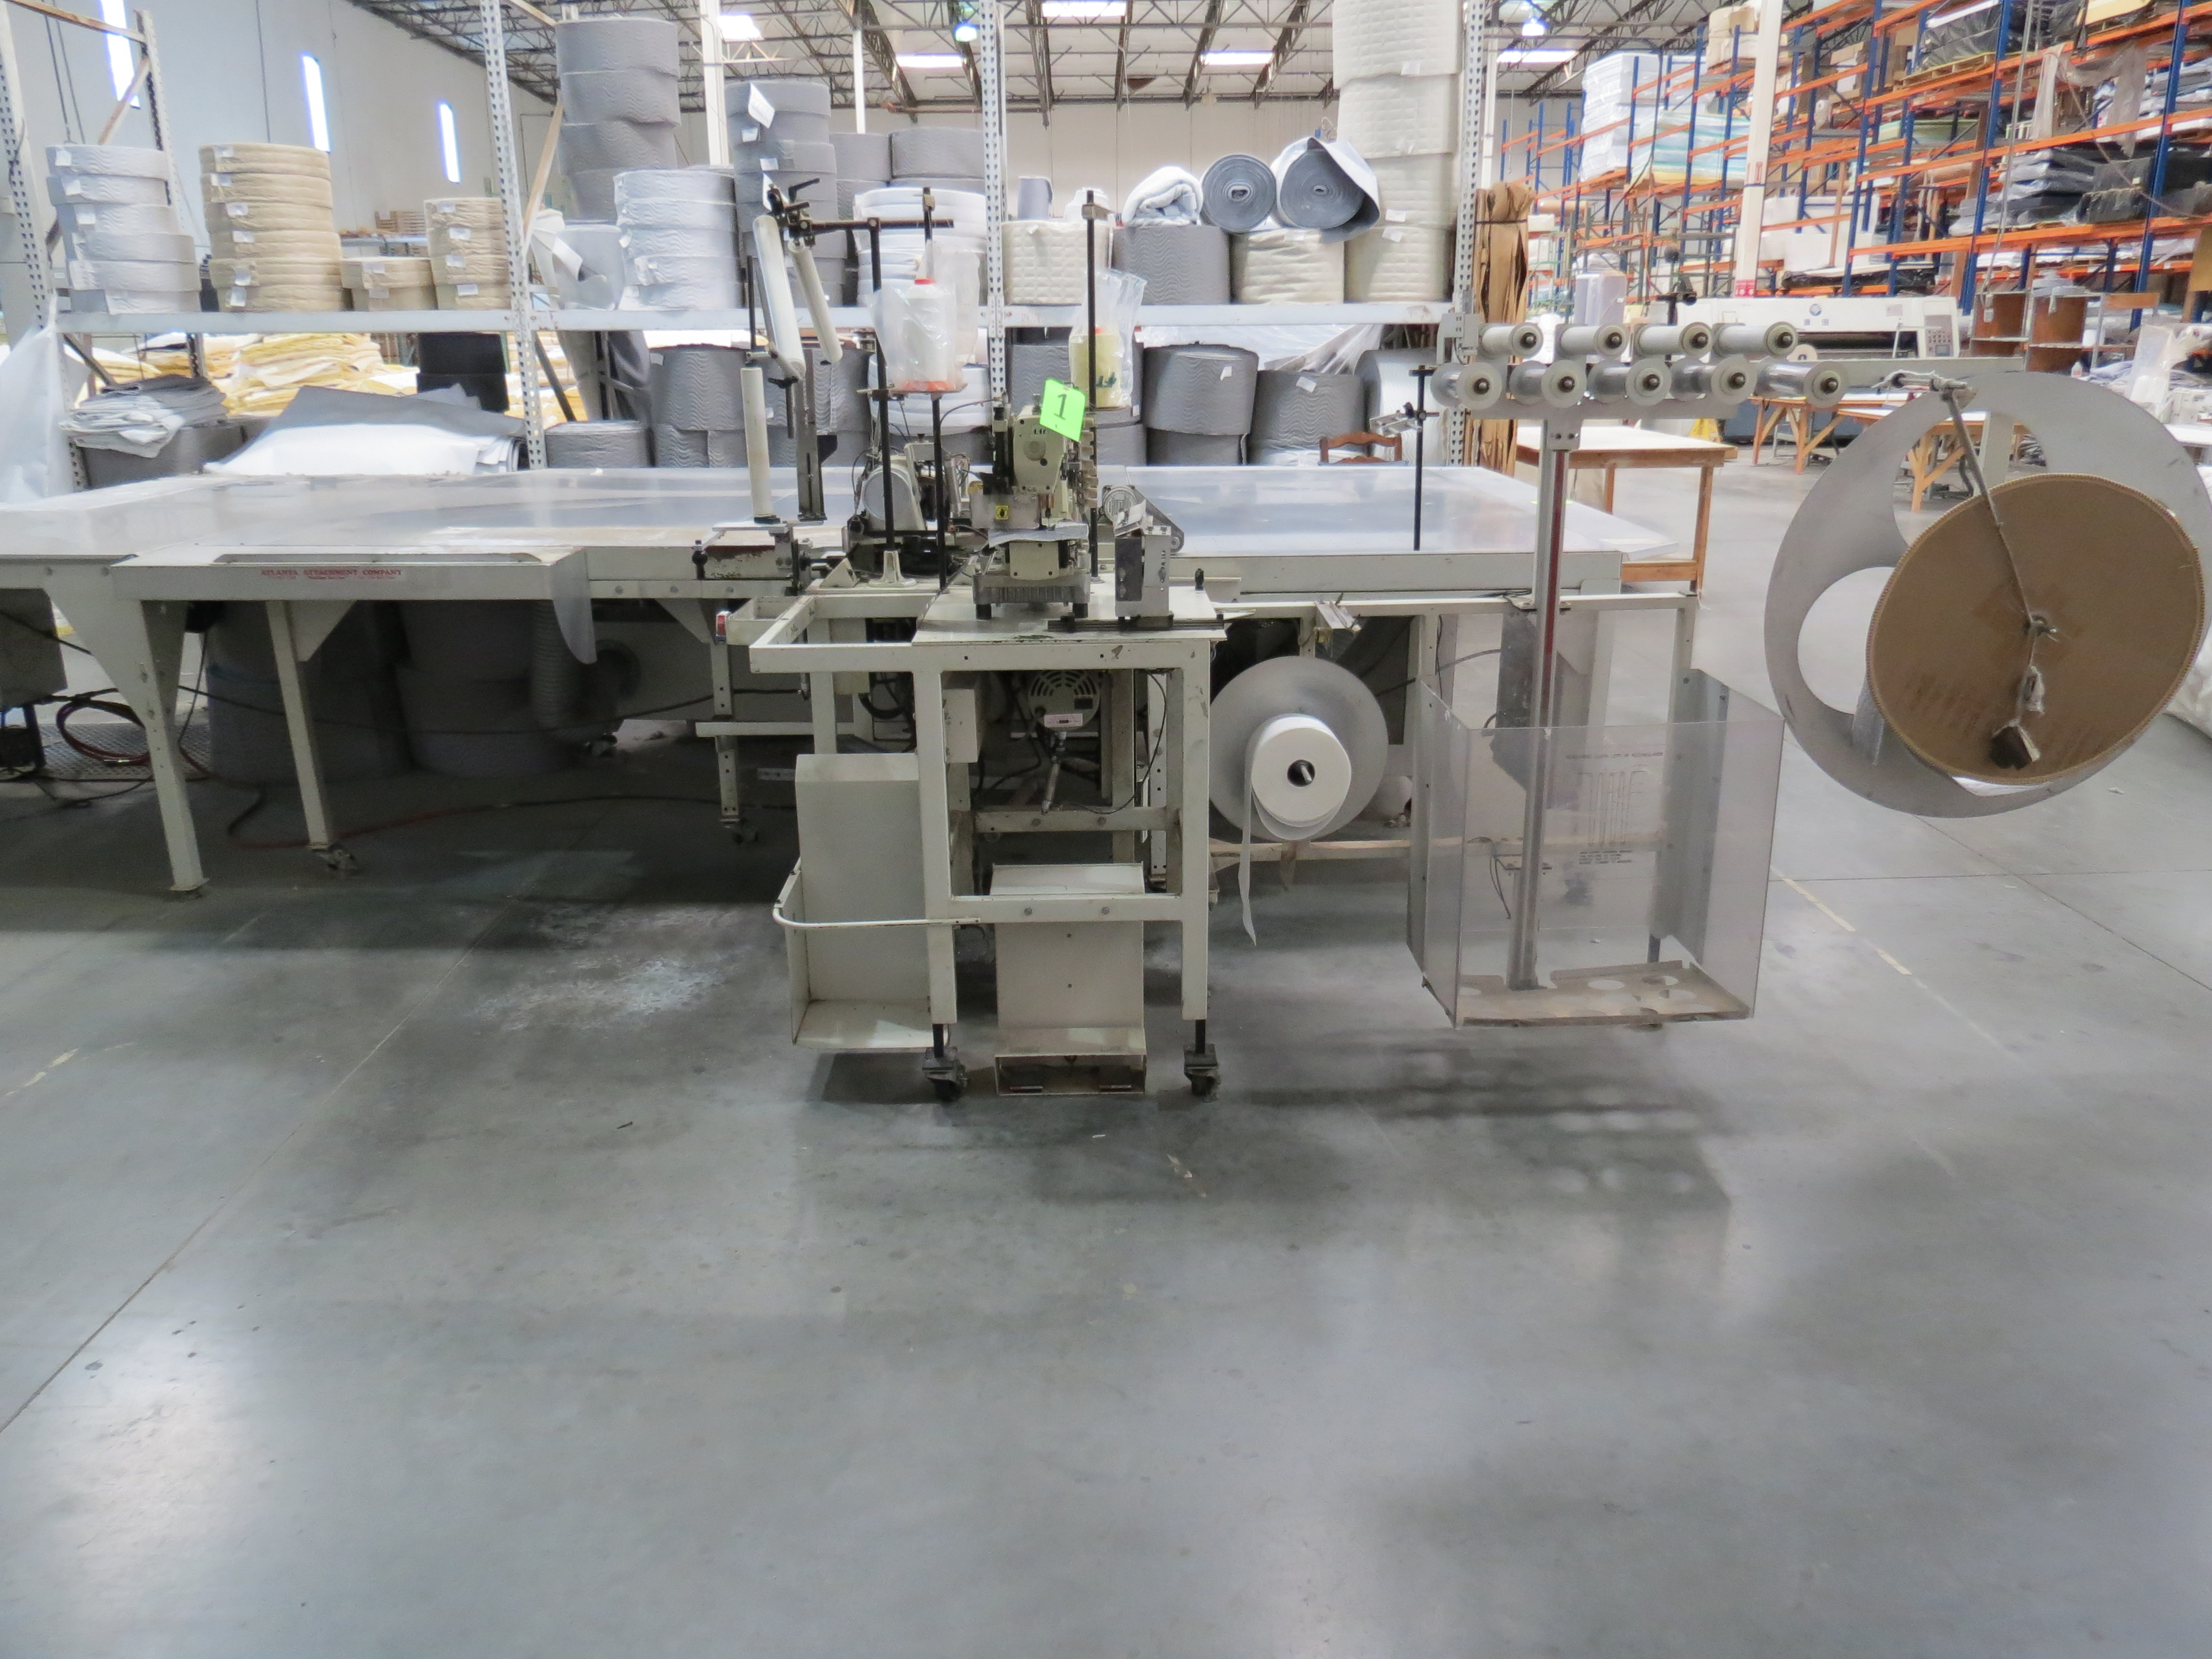 Atlanta Attachment Company VM1804P-NG-002 Gusset Sewing Machine with Flotation Table 8' x 13' - Image 2 of 8